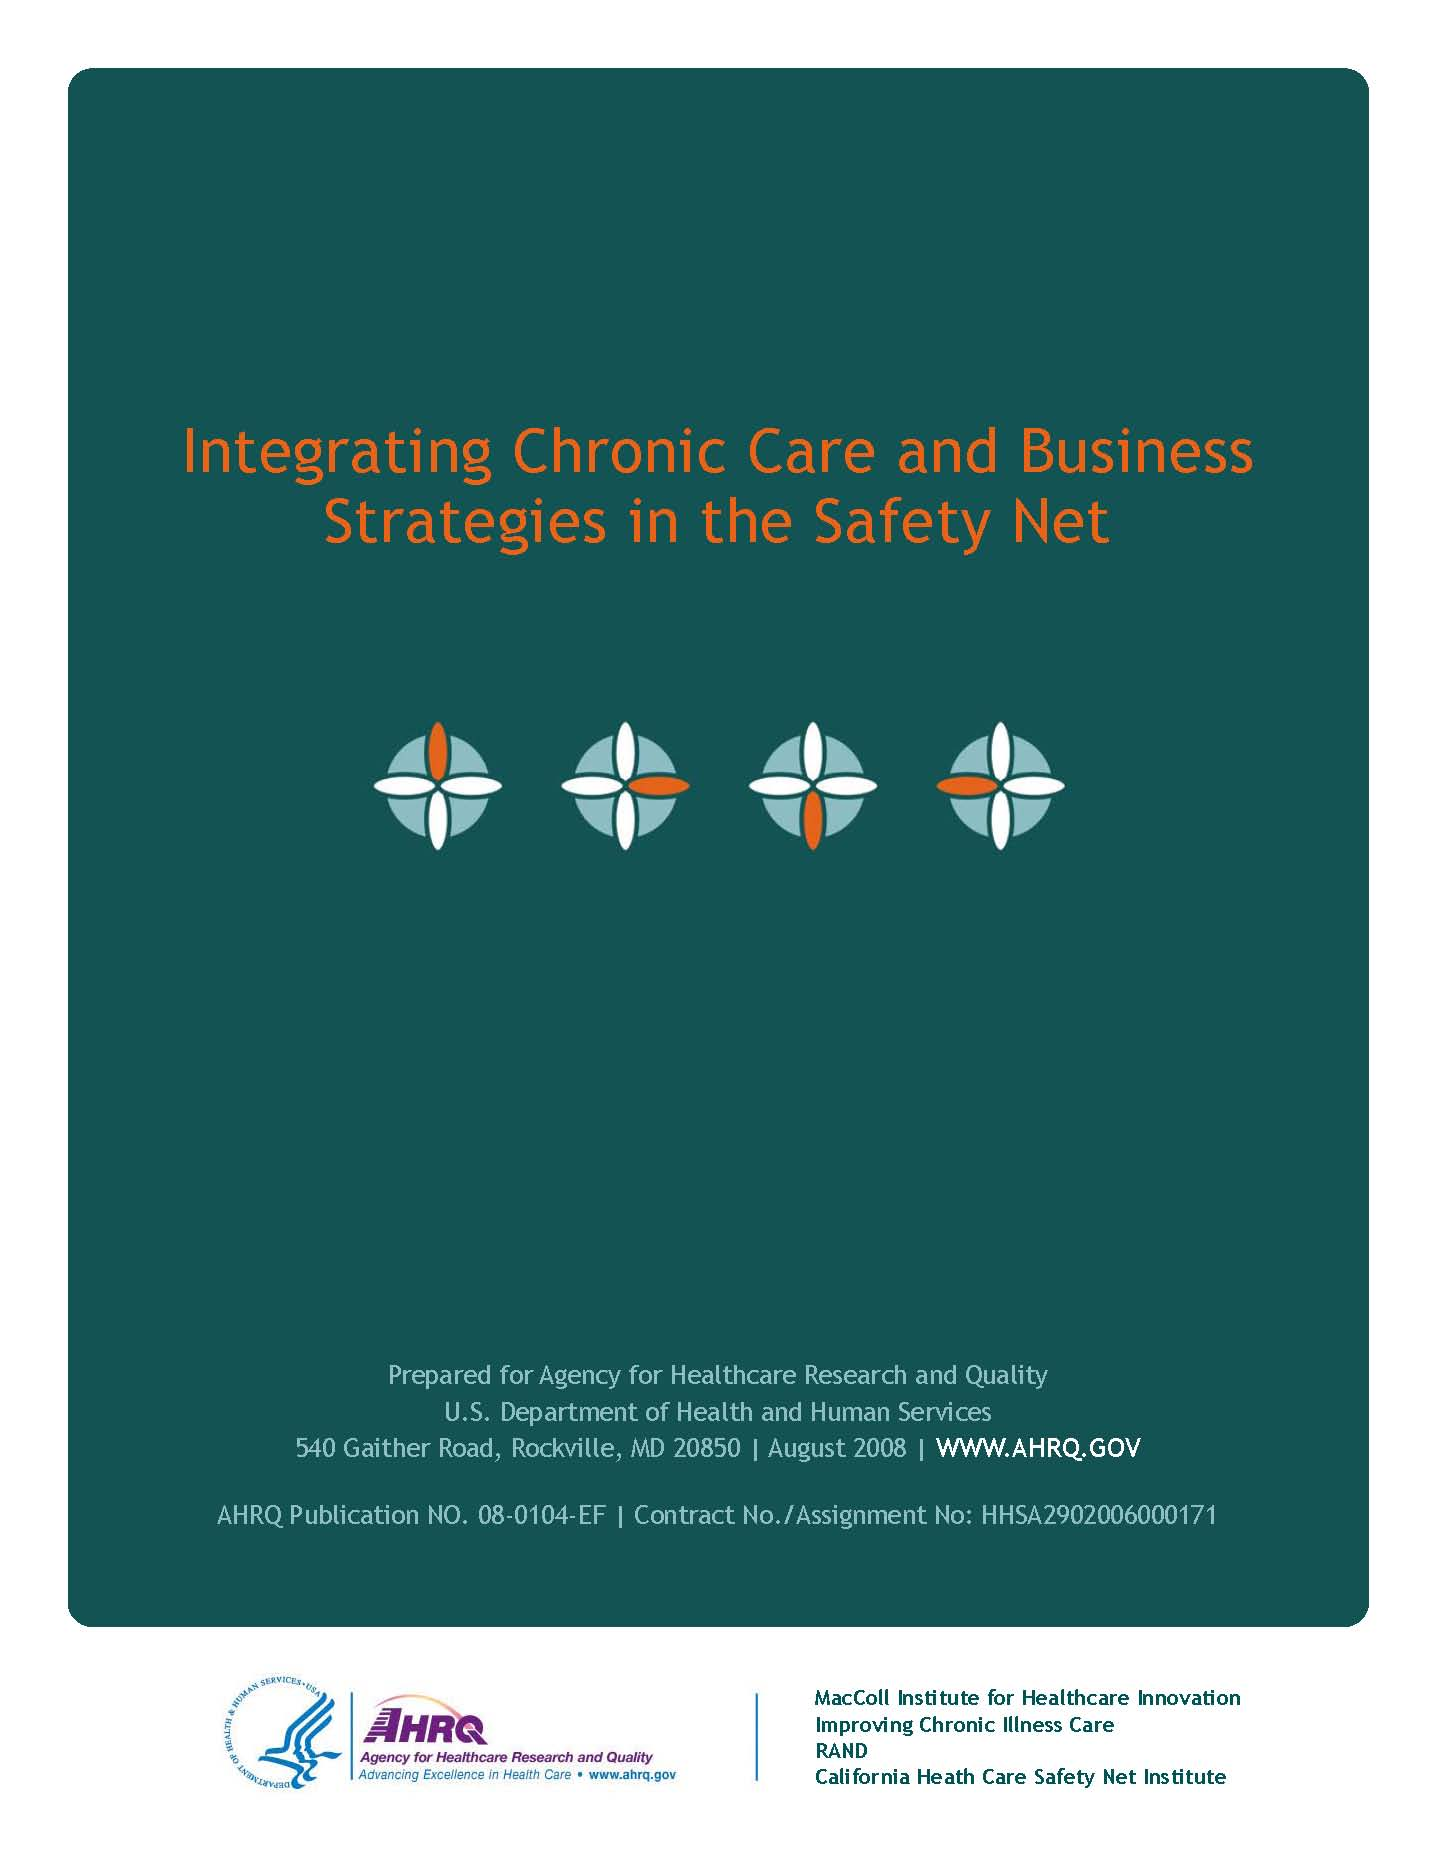 Chronic Disease Toolkit